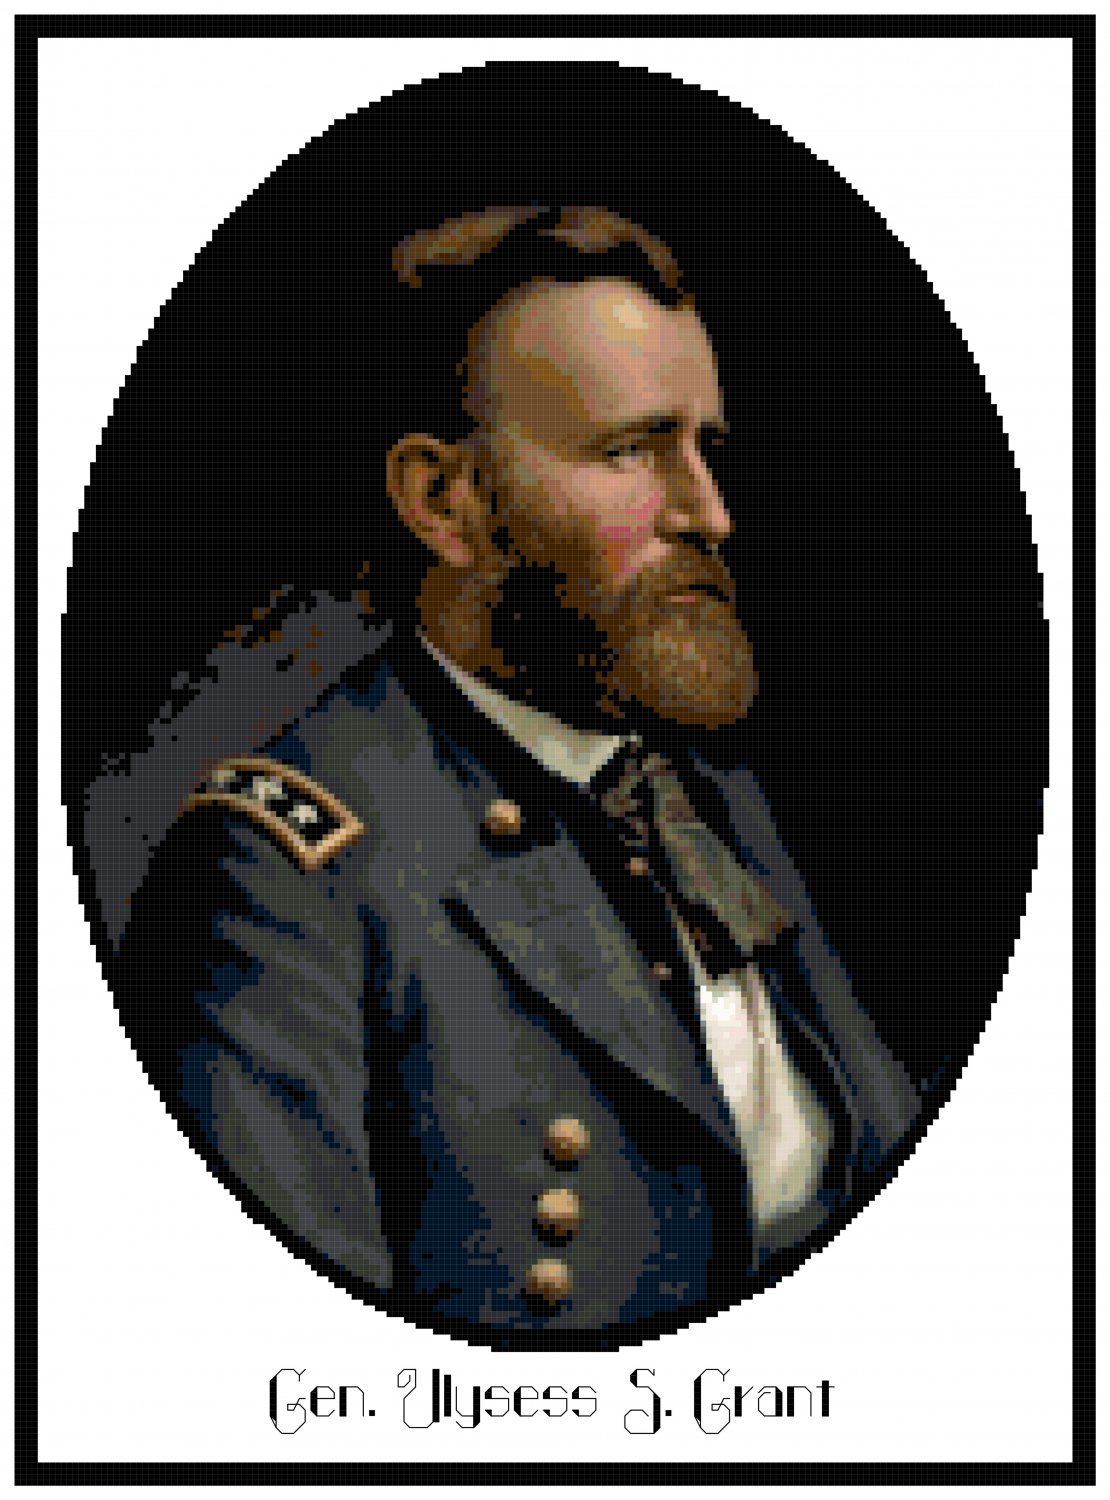 Portrail of Gen. Ulysess S. Grant - 1865